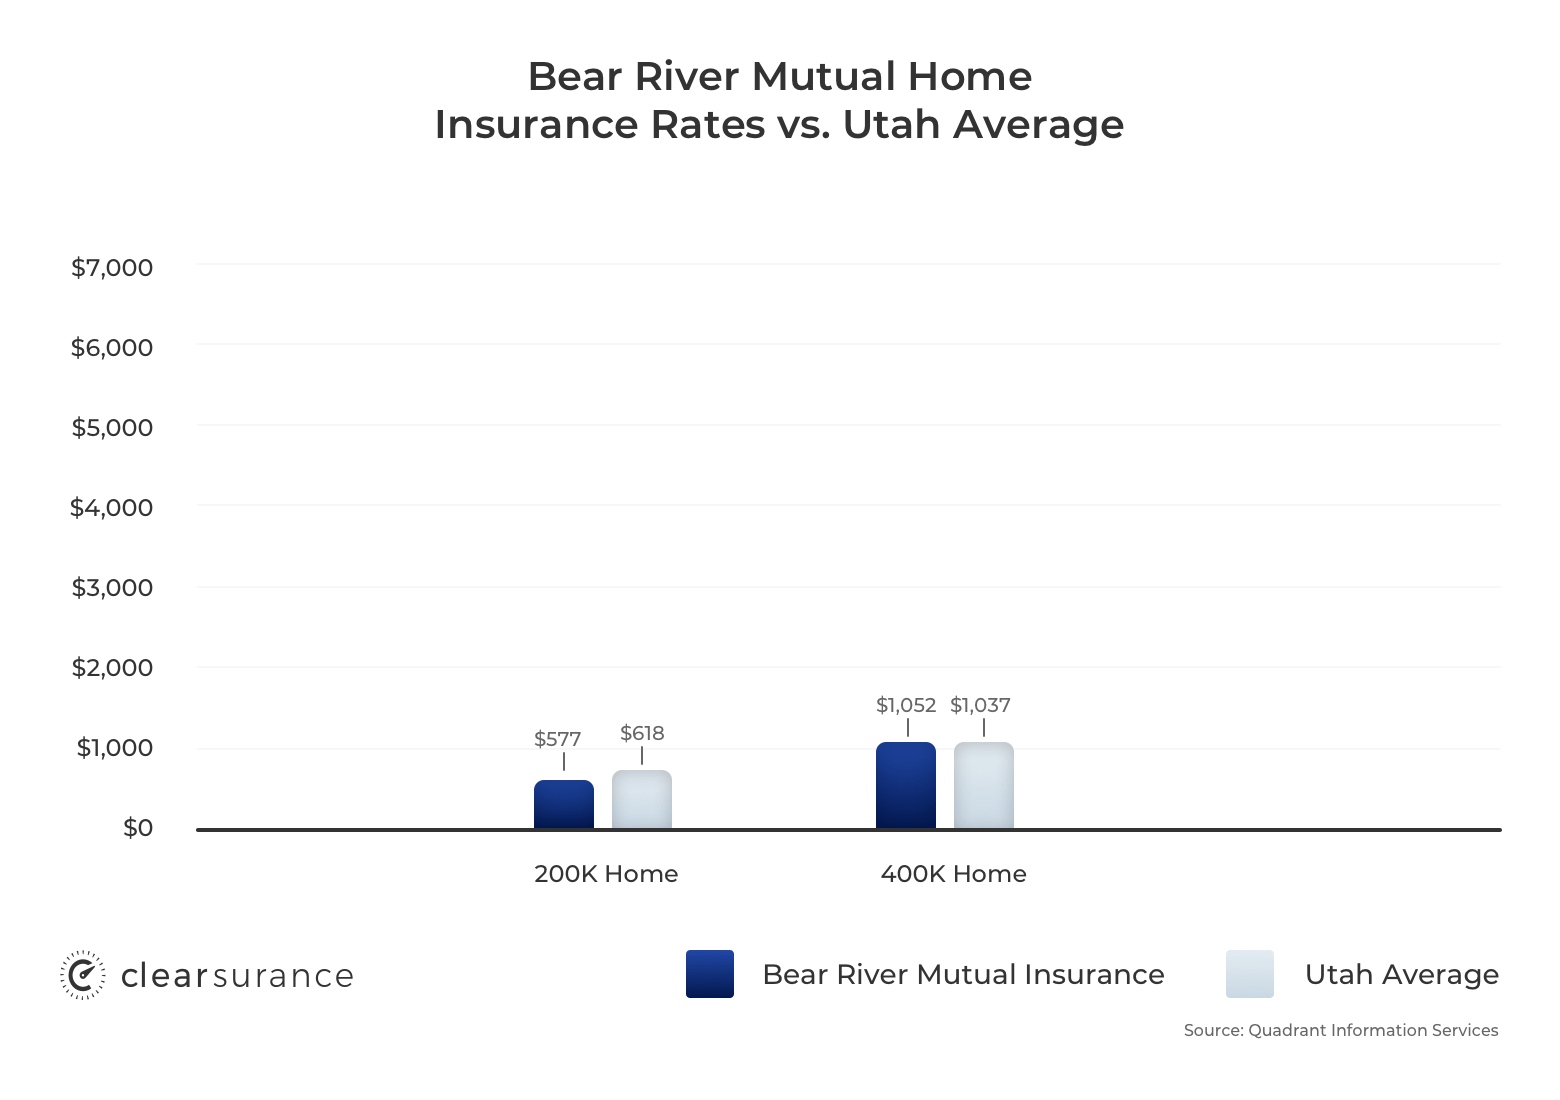 Graph comparing Bear River homeowners insurance rates vs. Utah average for a 200K and 400K home